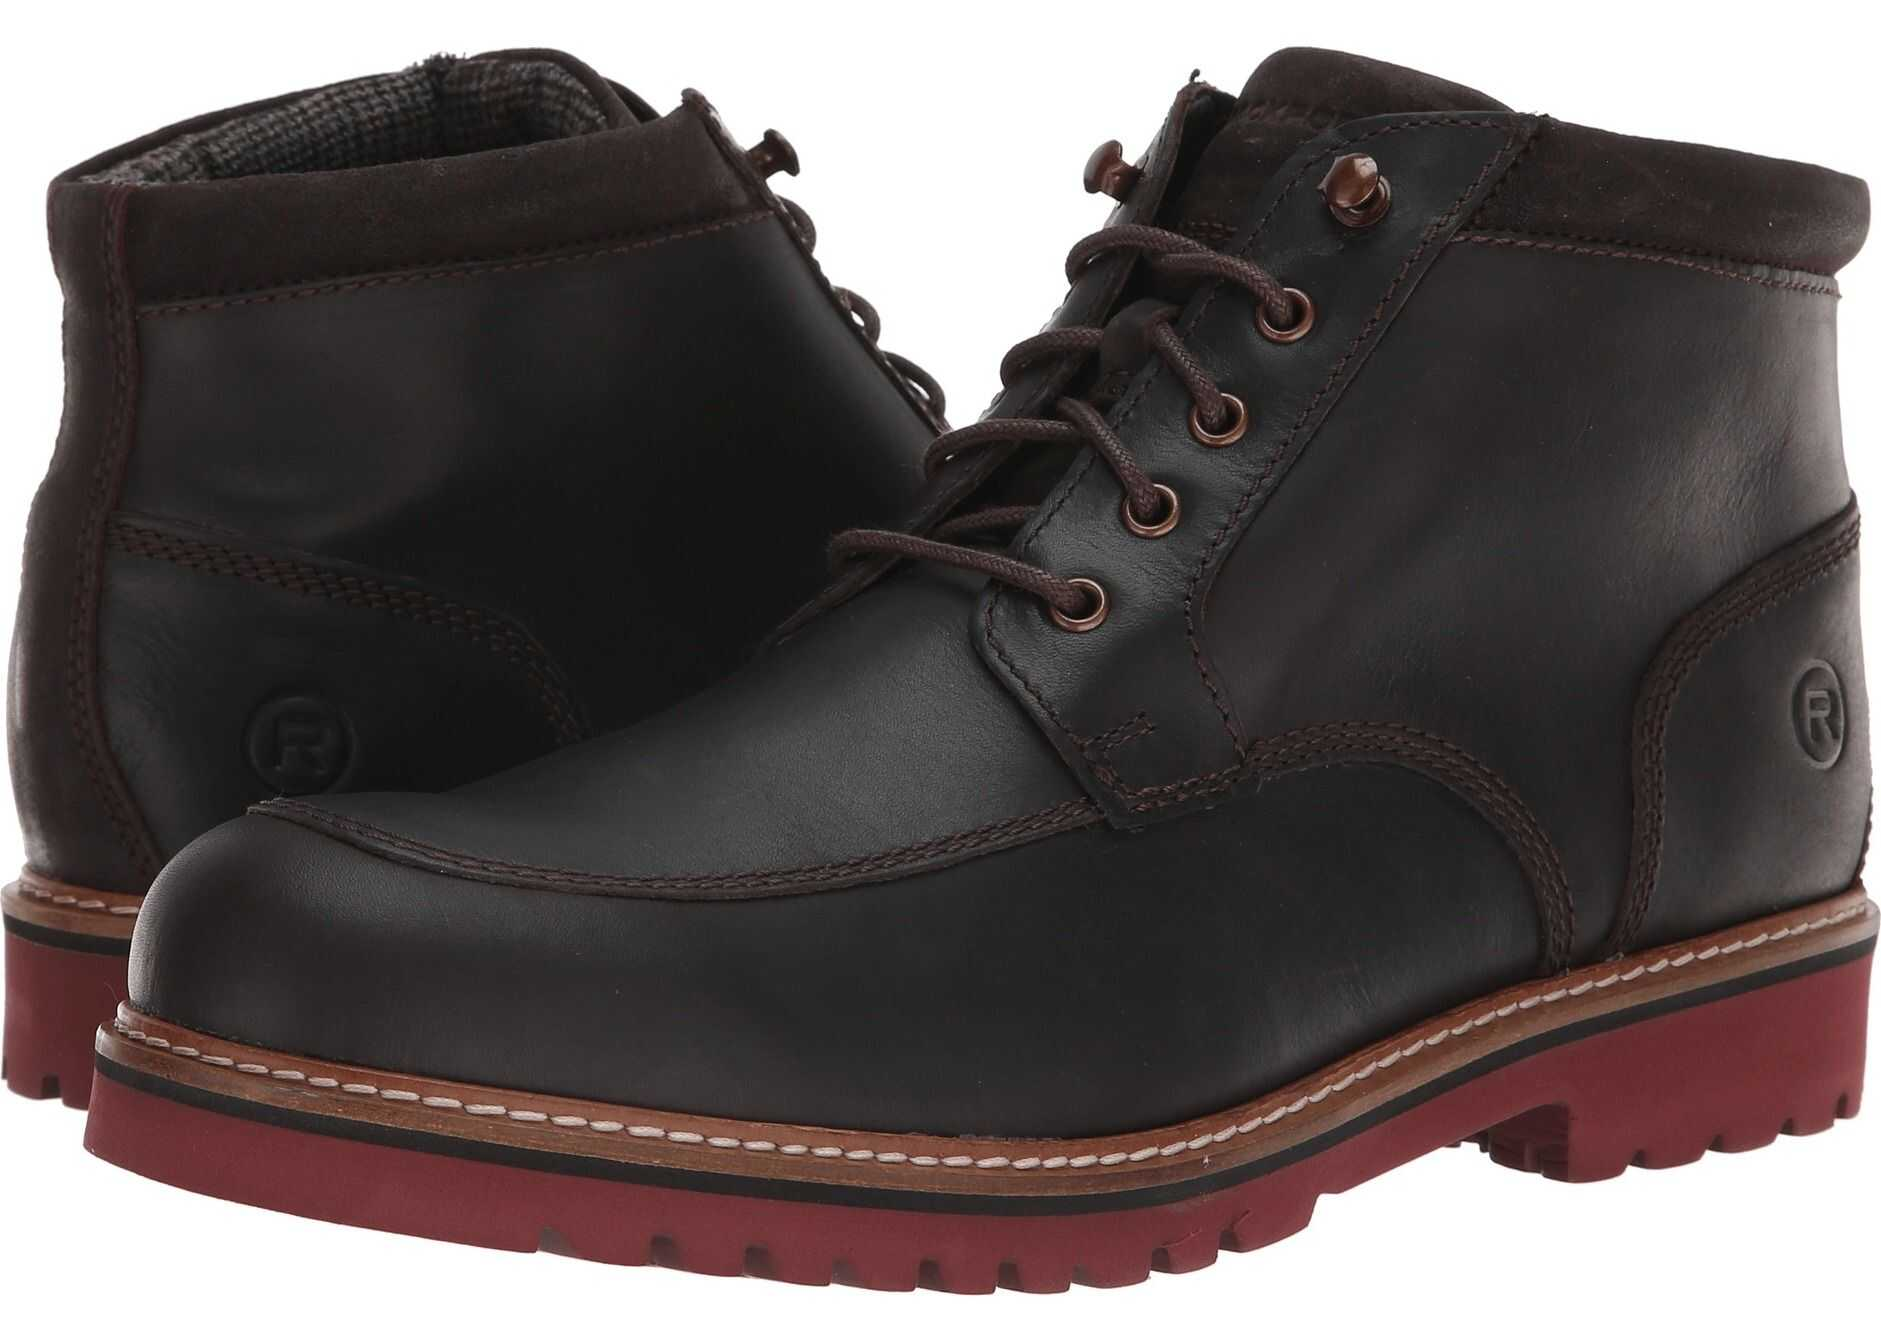 Rockport Marshall Rugged Moc Toe Dark Bitter Chocolate